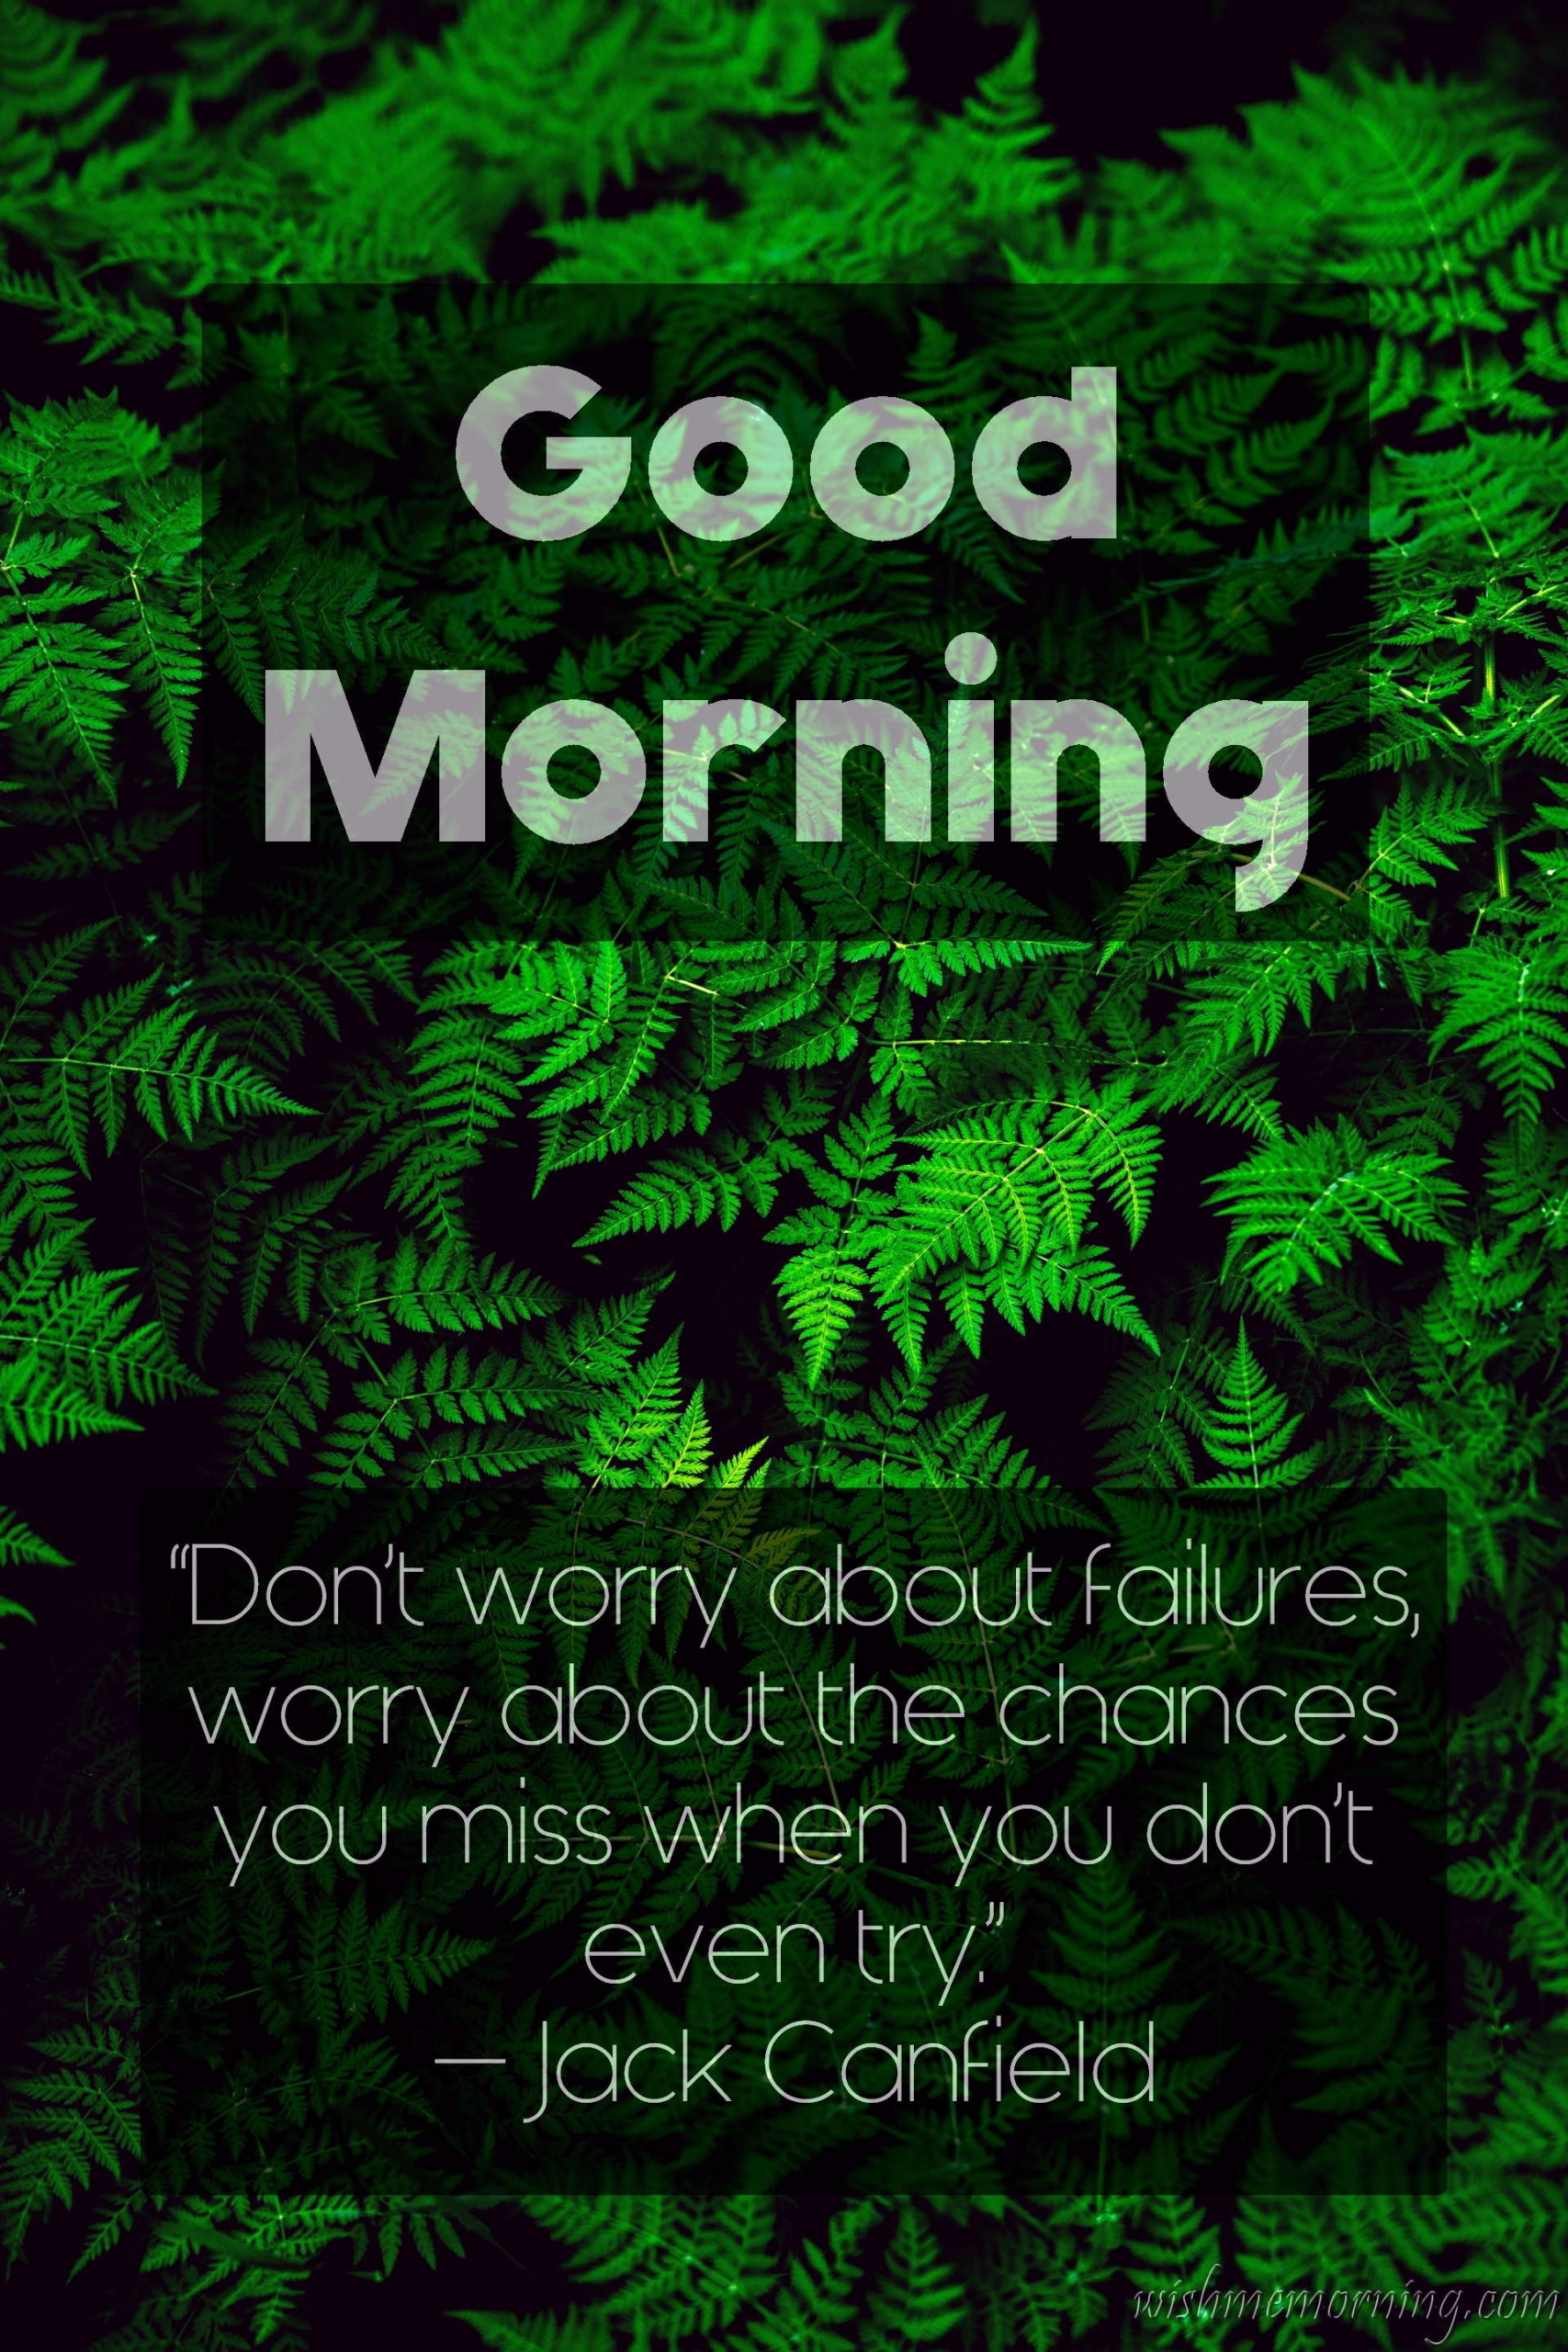 Good Morning Quote Jack Canfield Plants Background